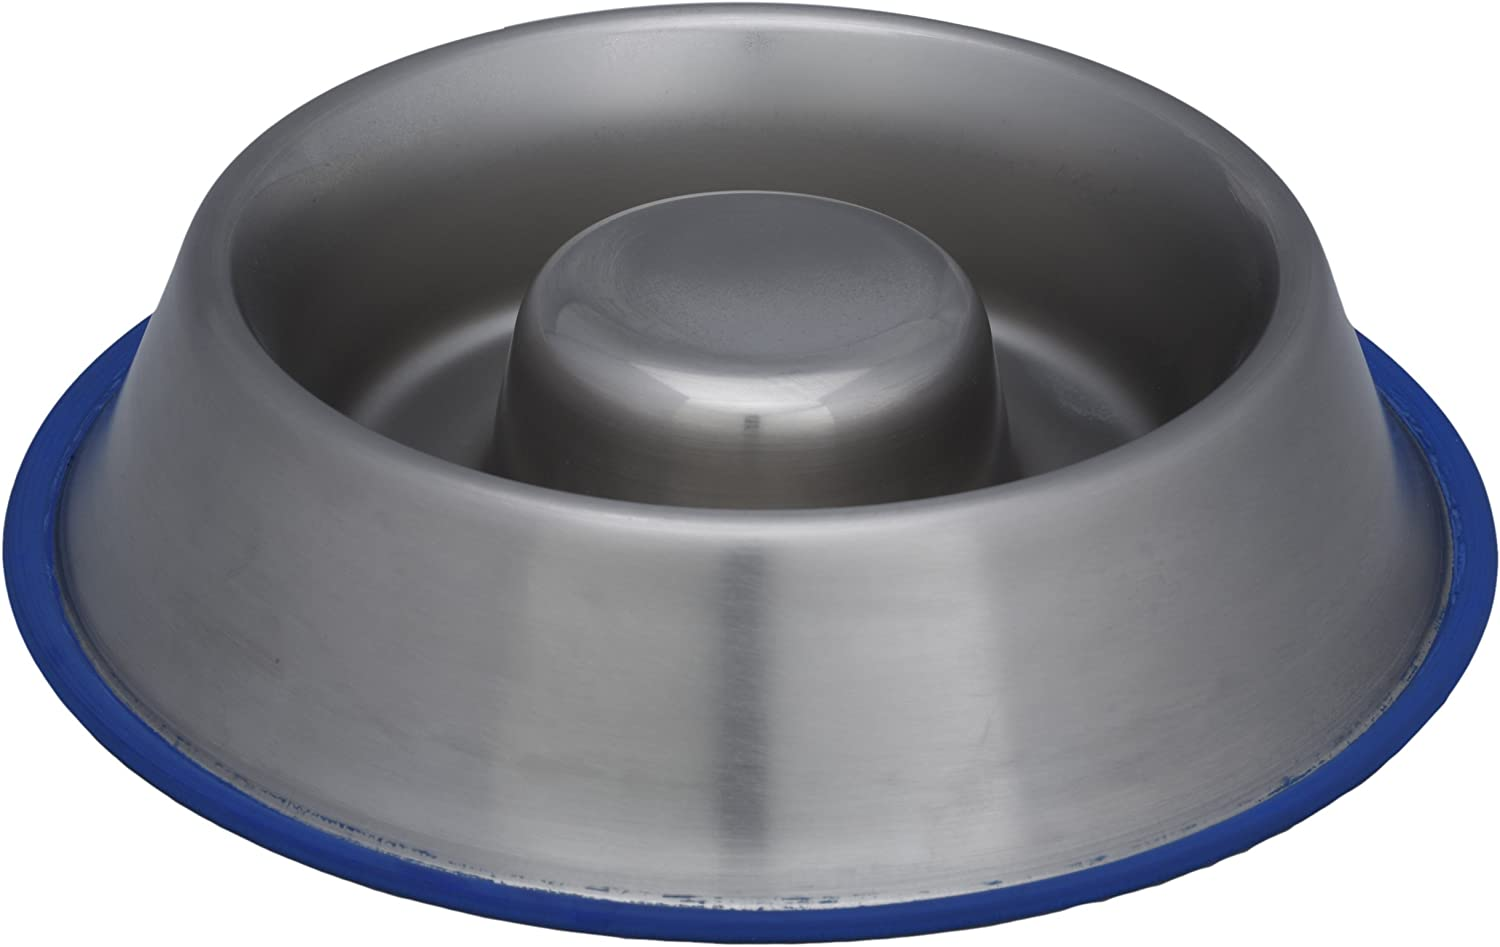 Indipets Heavy Duty Stainless Steel Slow Feed Dog Bowl - Large 45oz - Silicon Bottom Ring Prevents Sliding and Tipping